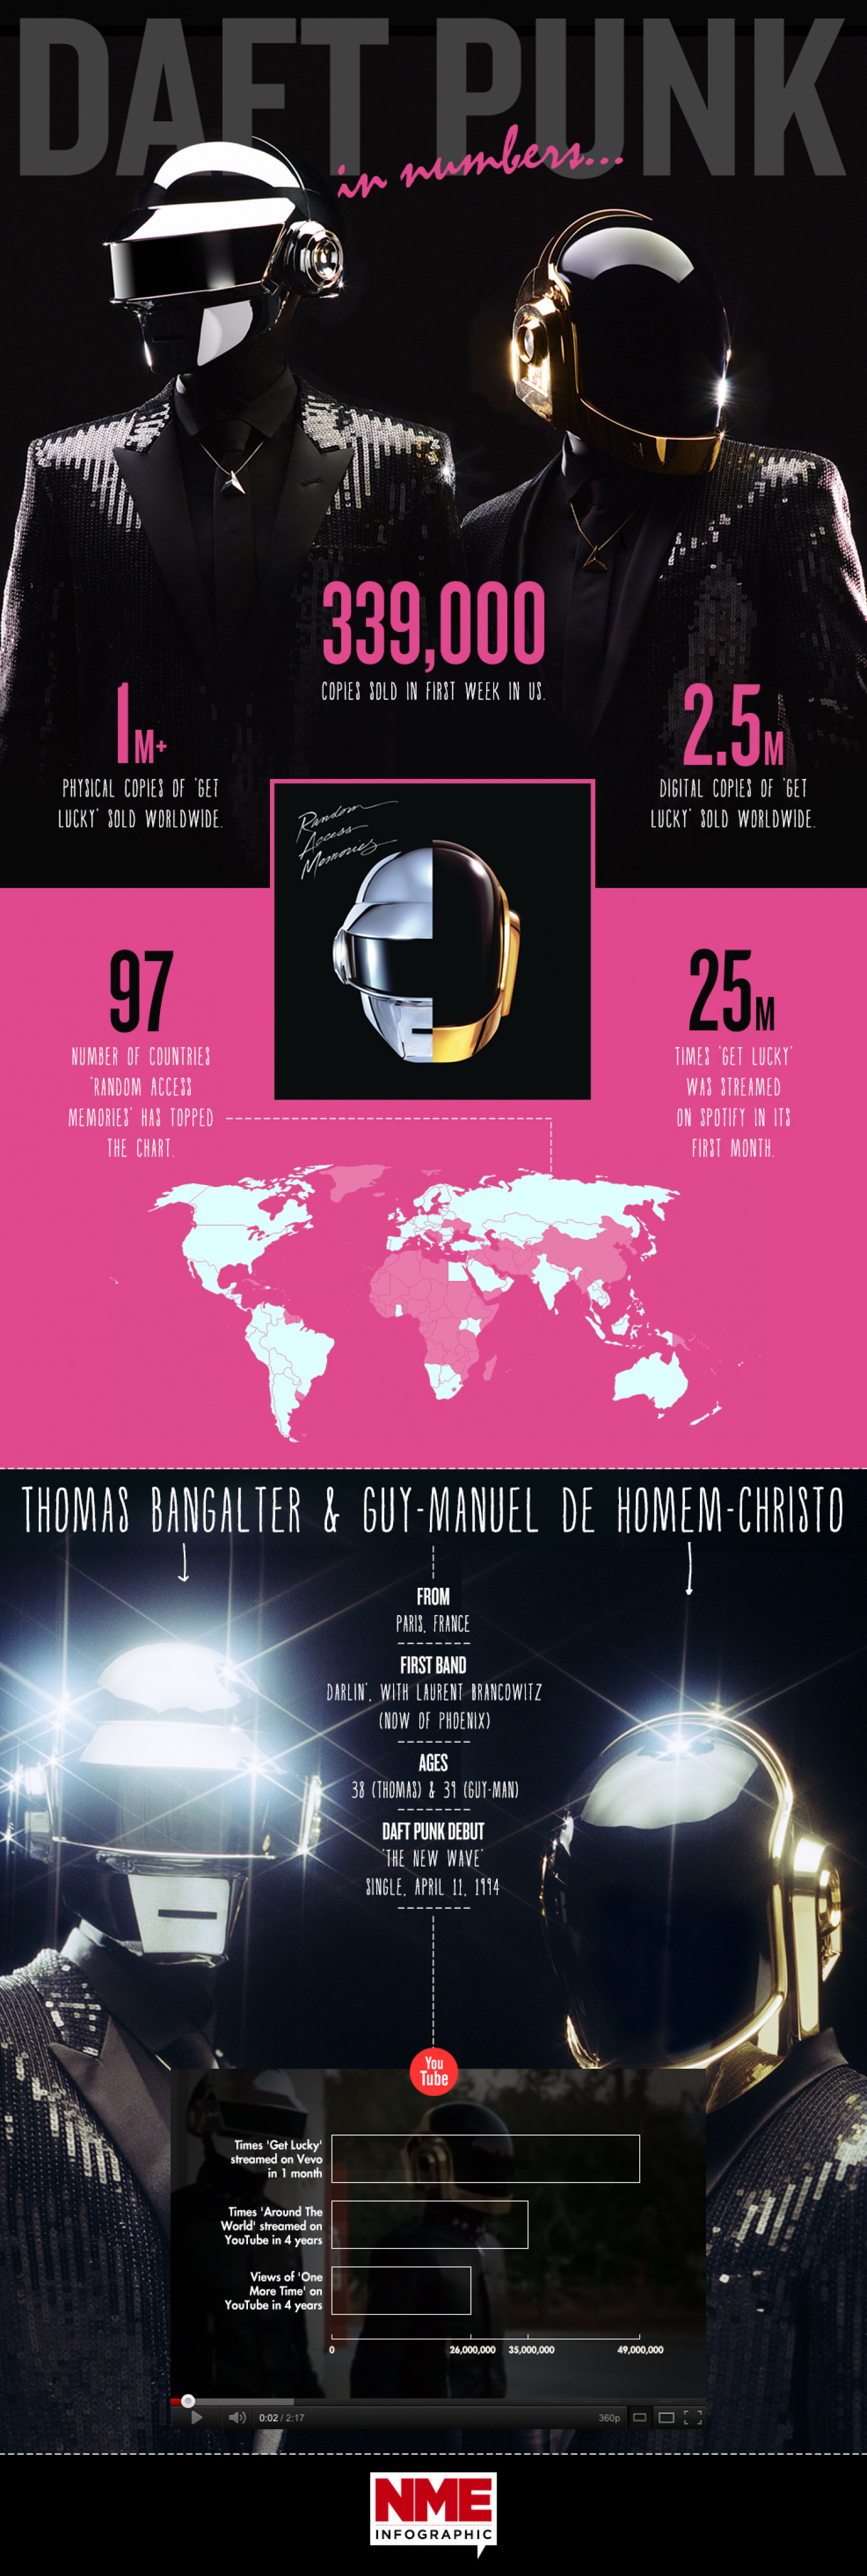 Daft Punk In Numbers Infographic